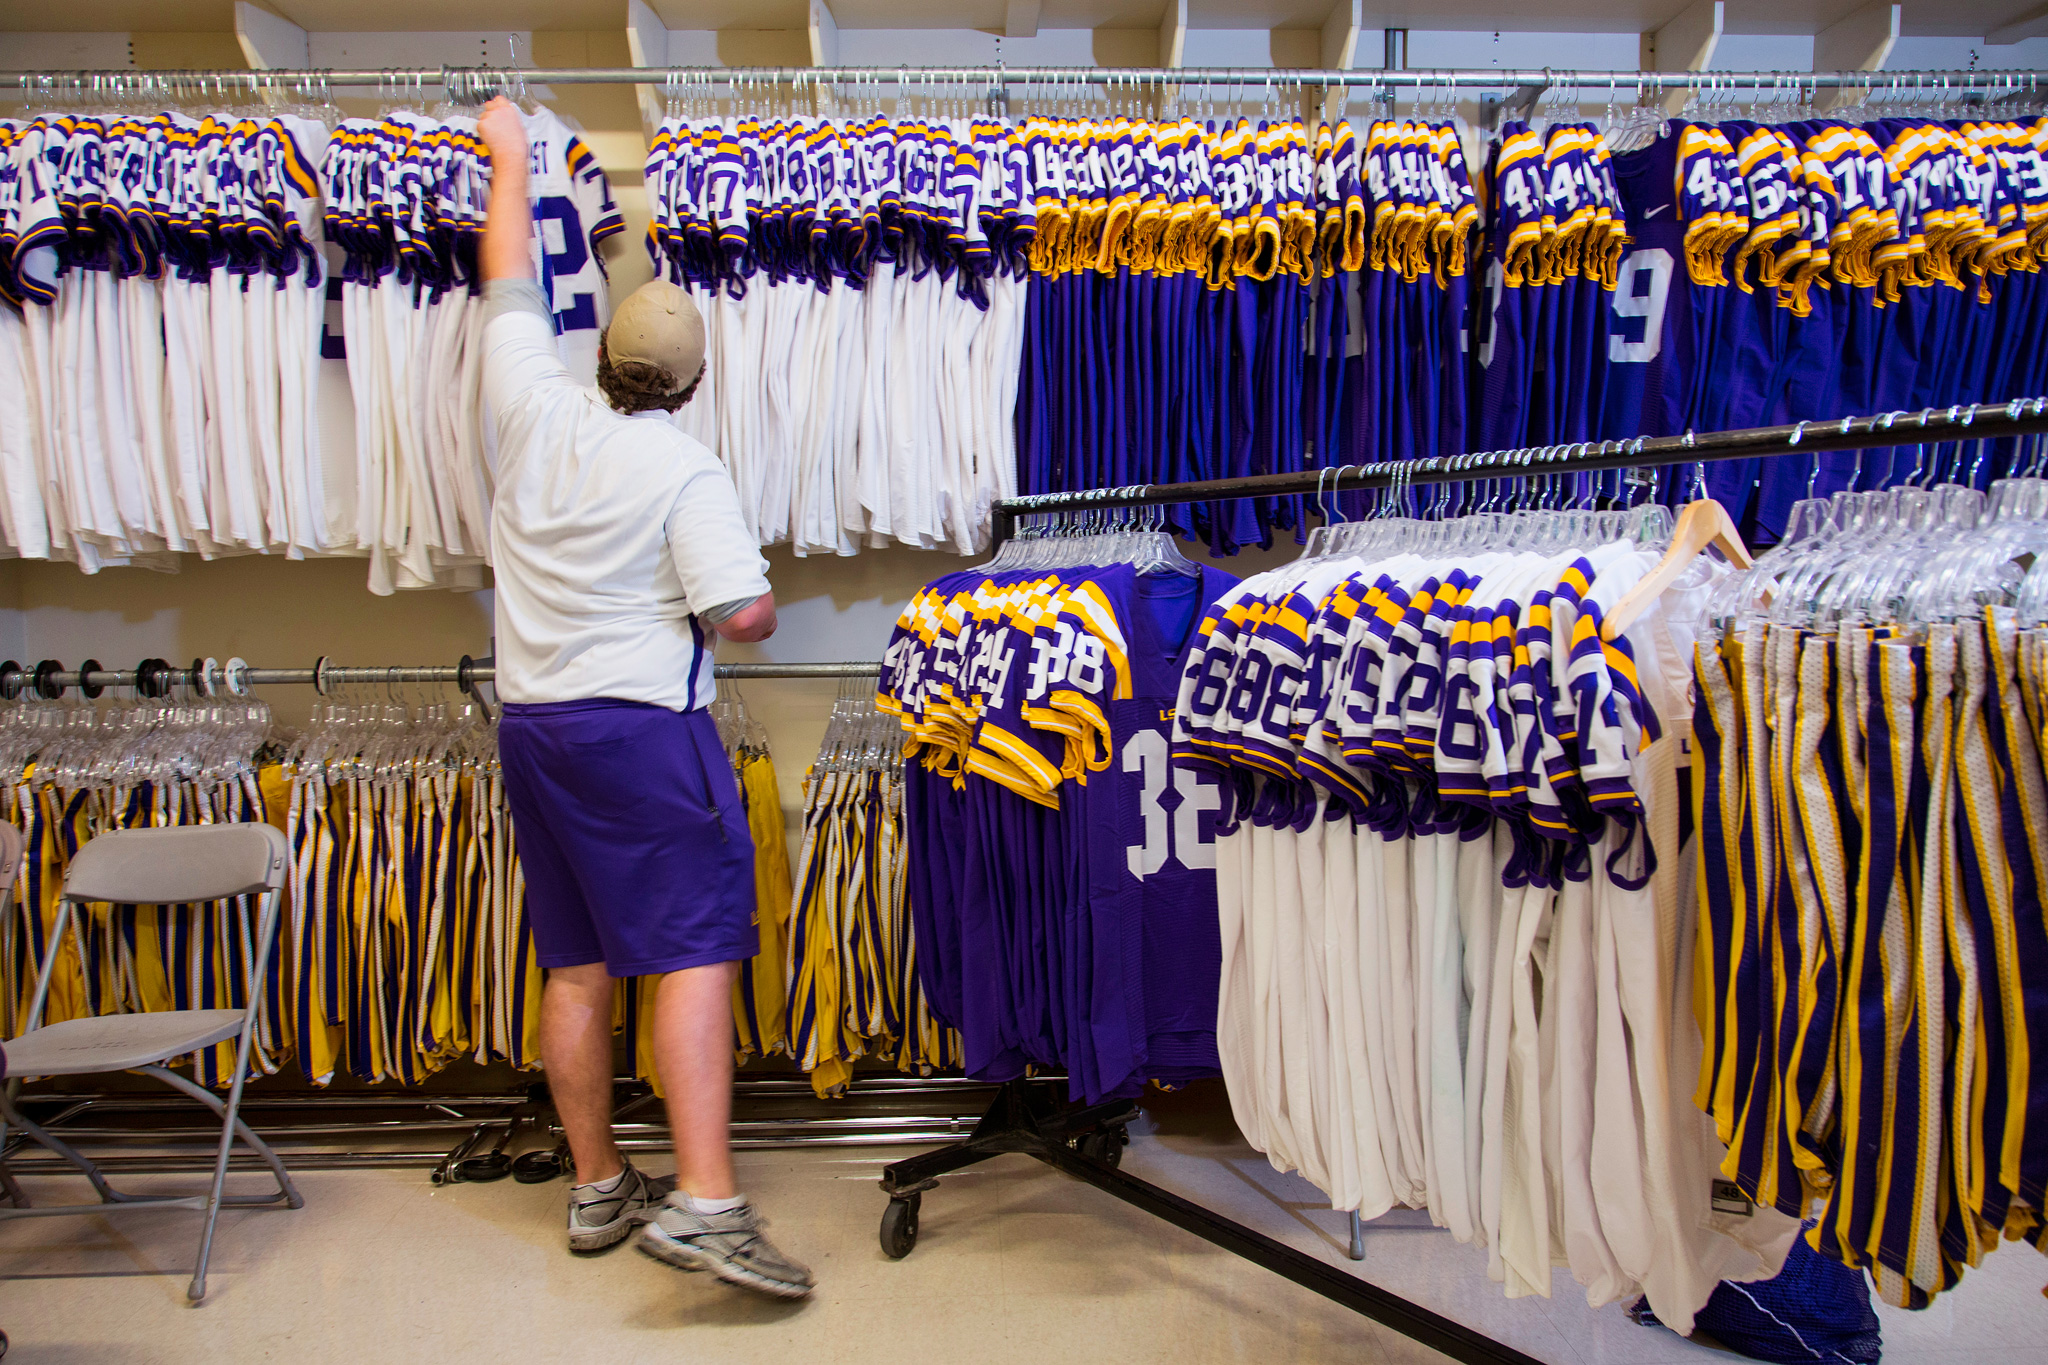 Racks of LSU jerseys